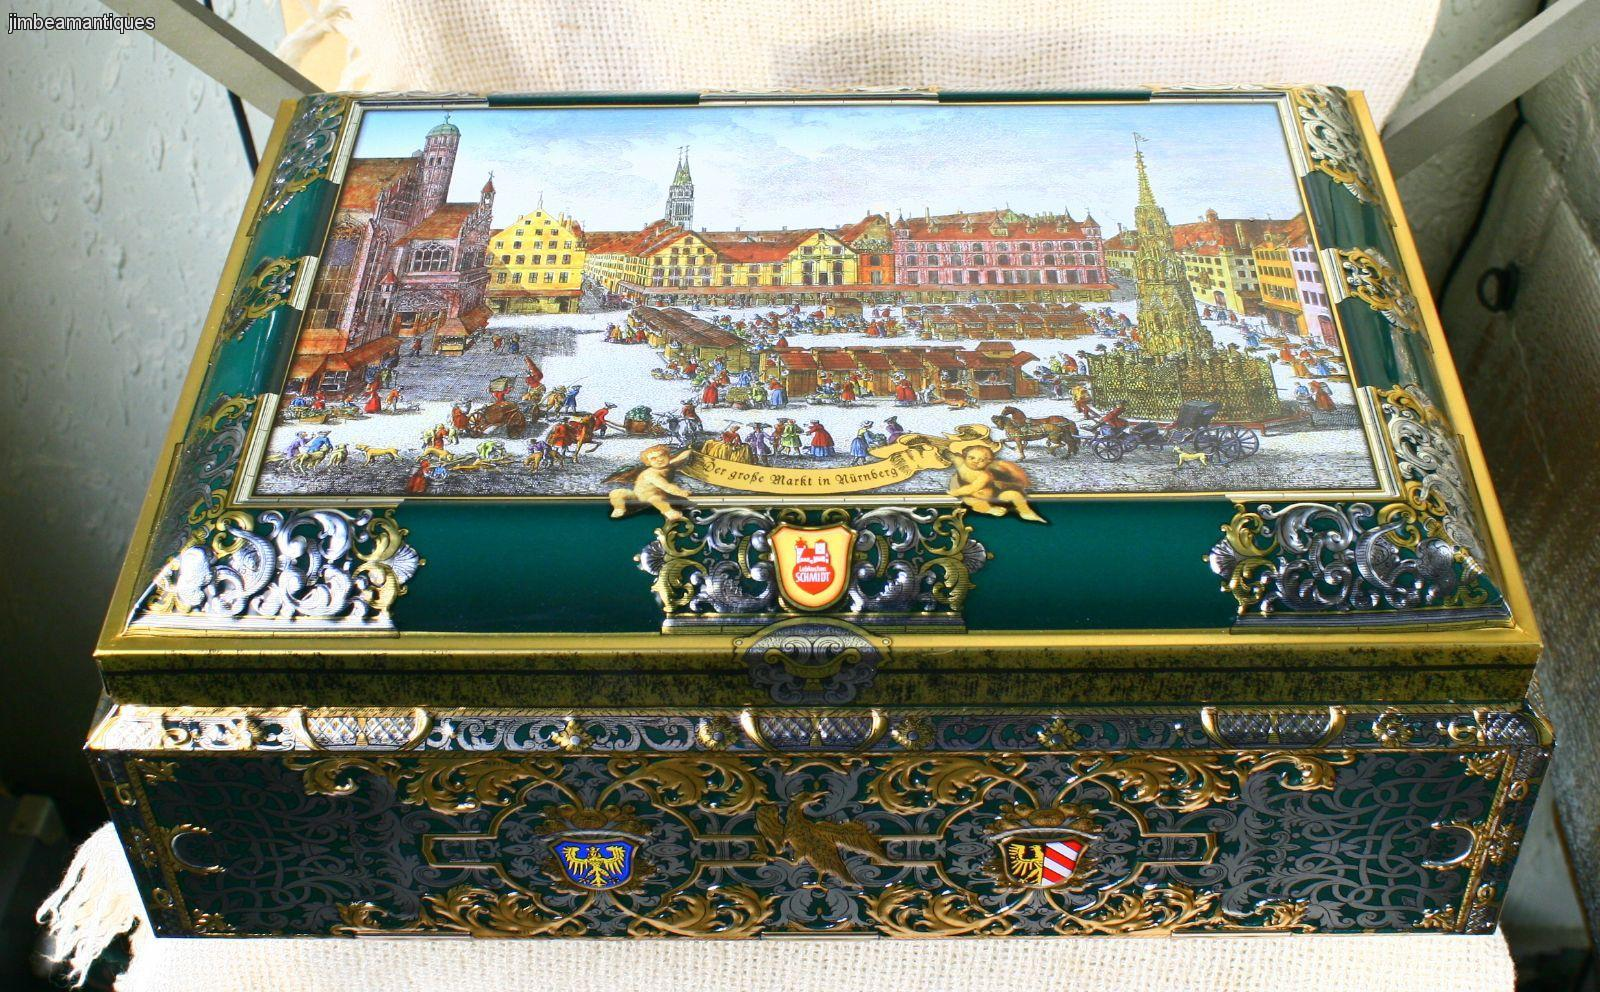 nurnberg germany lebkuchen schmidt large collectible cookie tin chest box 17 39 39 ebay. Black Bedroom Furniture Sets. Home Design Ideas